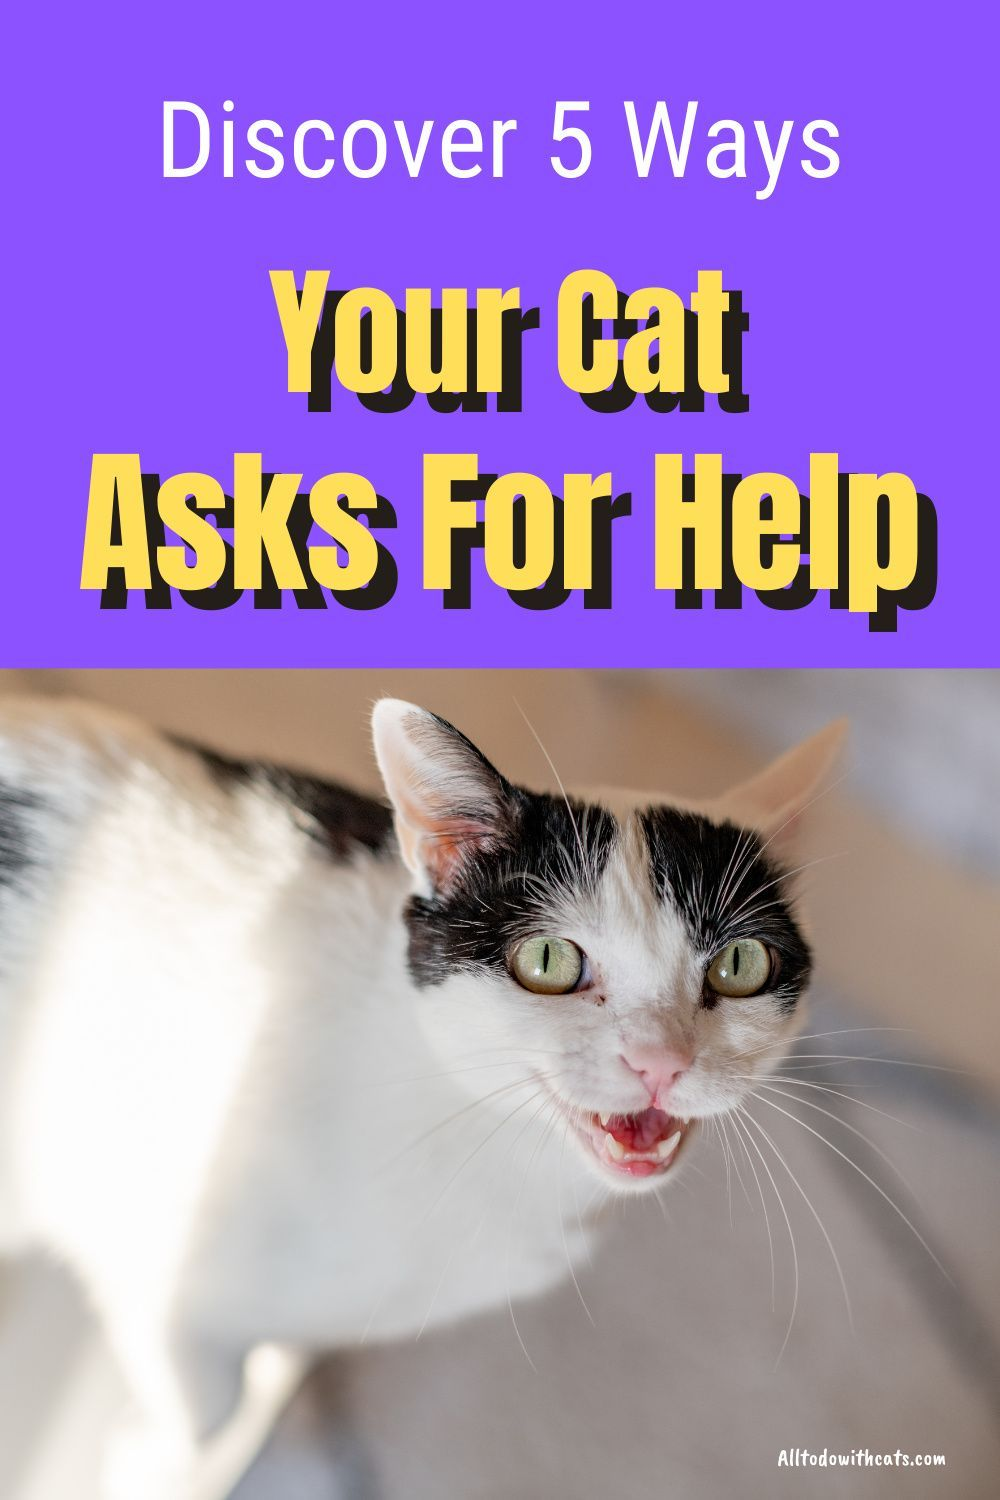 5 Ways Your Cat Asks For Help What You Need To Know In 2020 Cat Parenting Cat Behavior Cat Care Tips